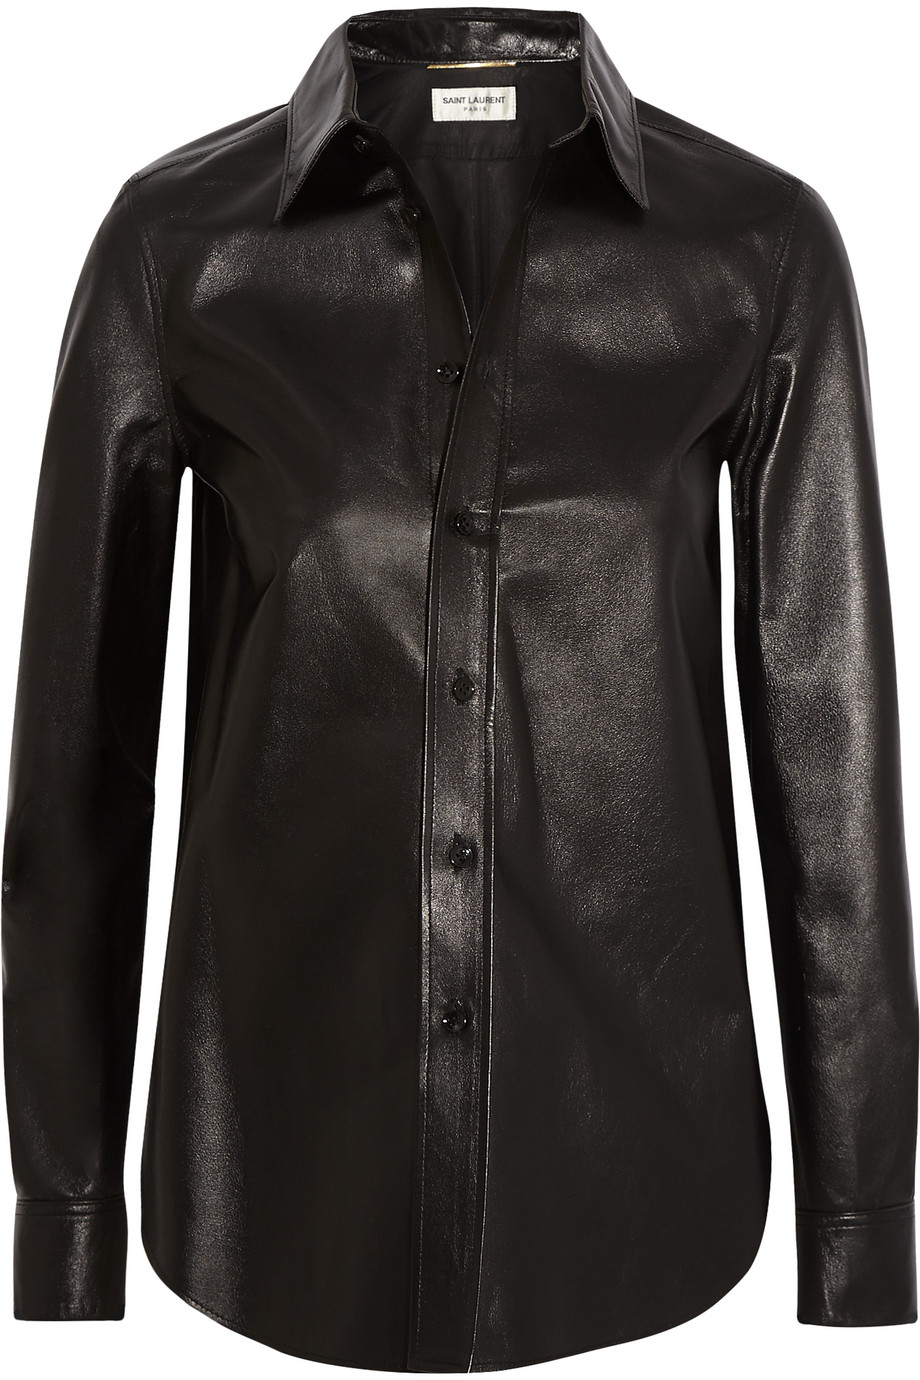 Saint Laurent Glossed-Leather Shirt, Size: 38